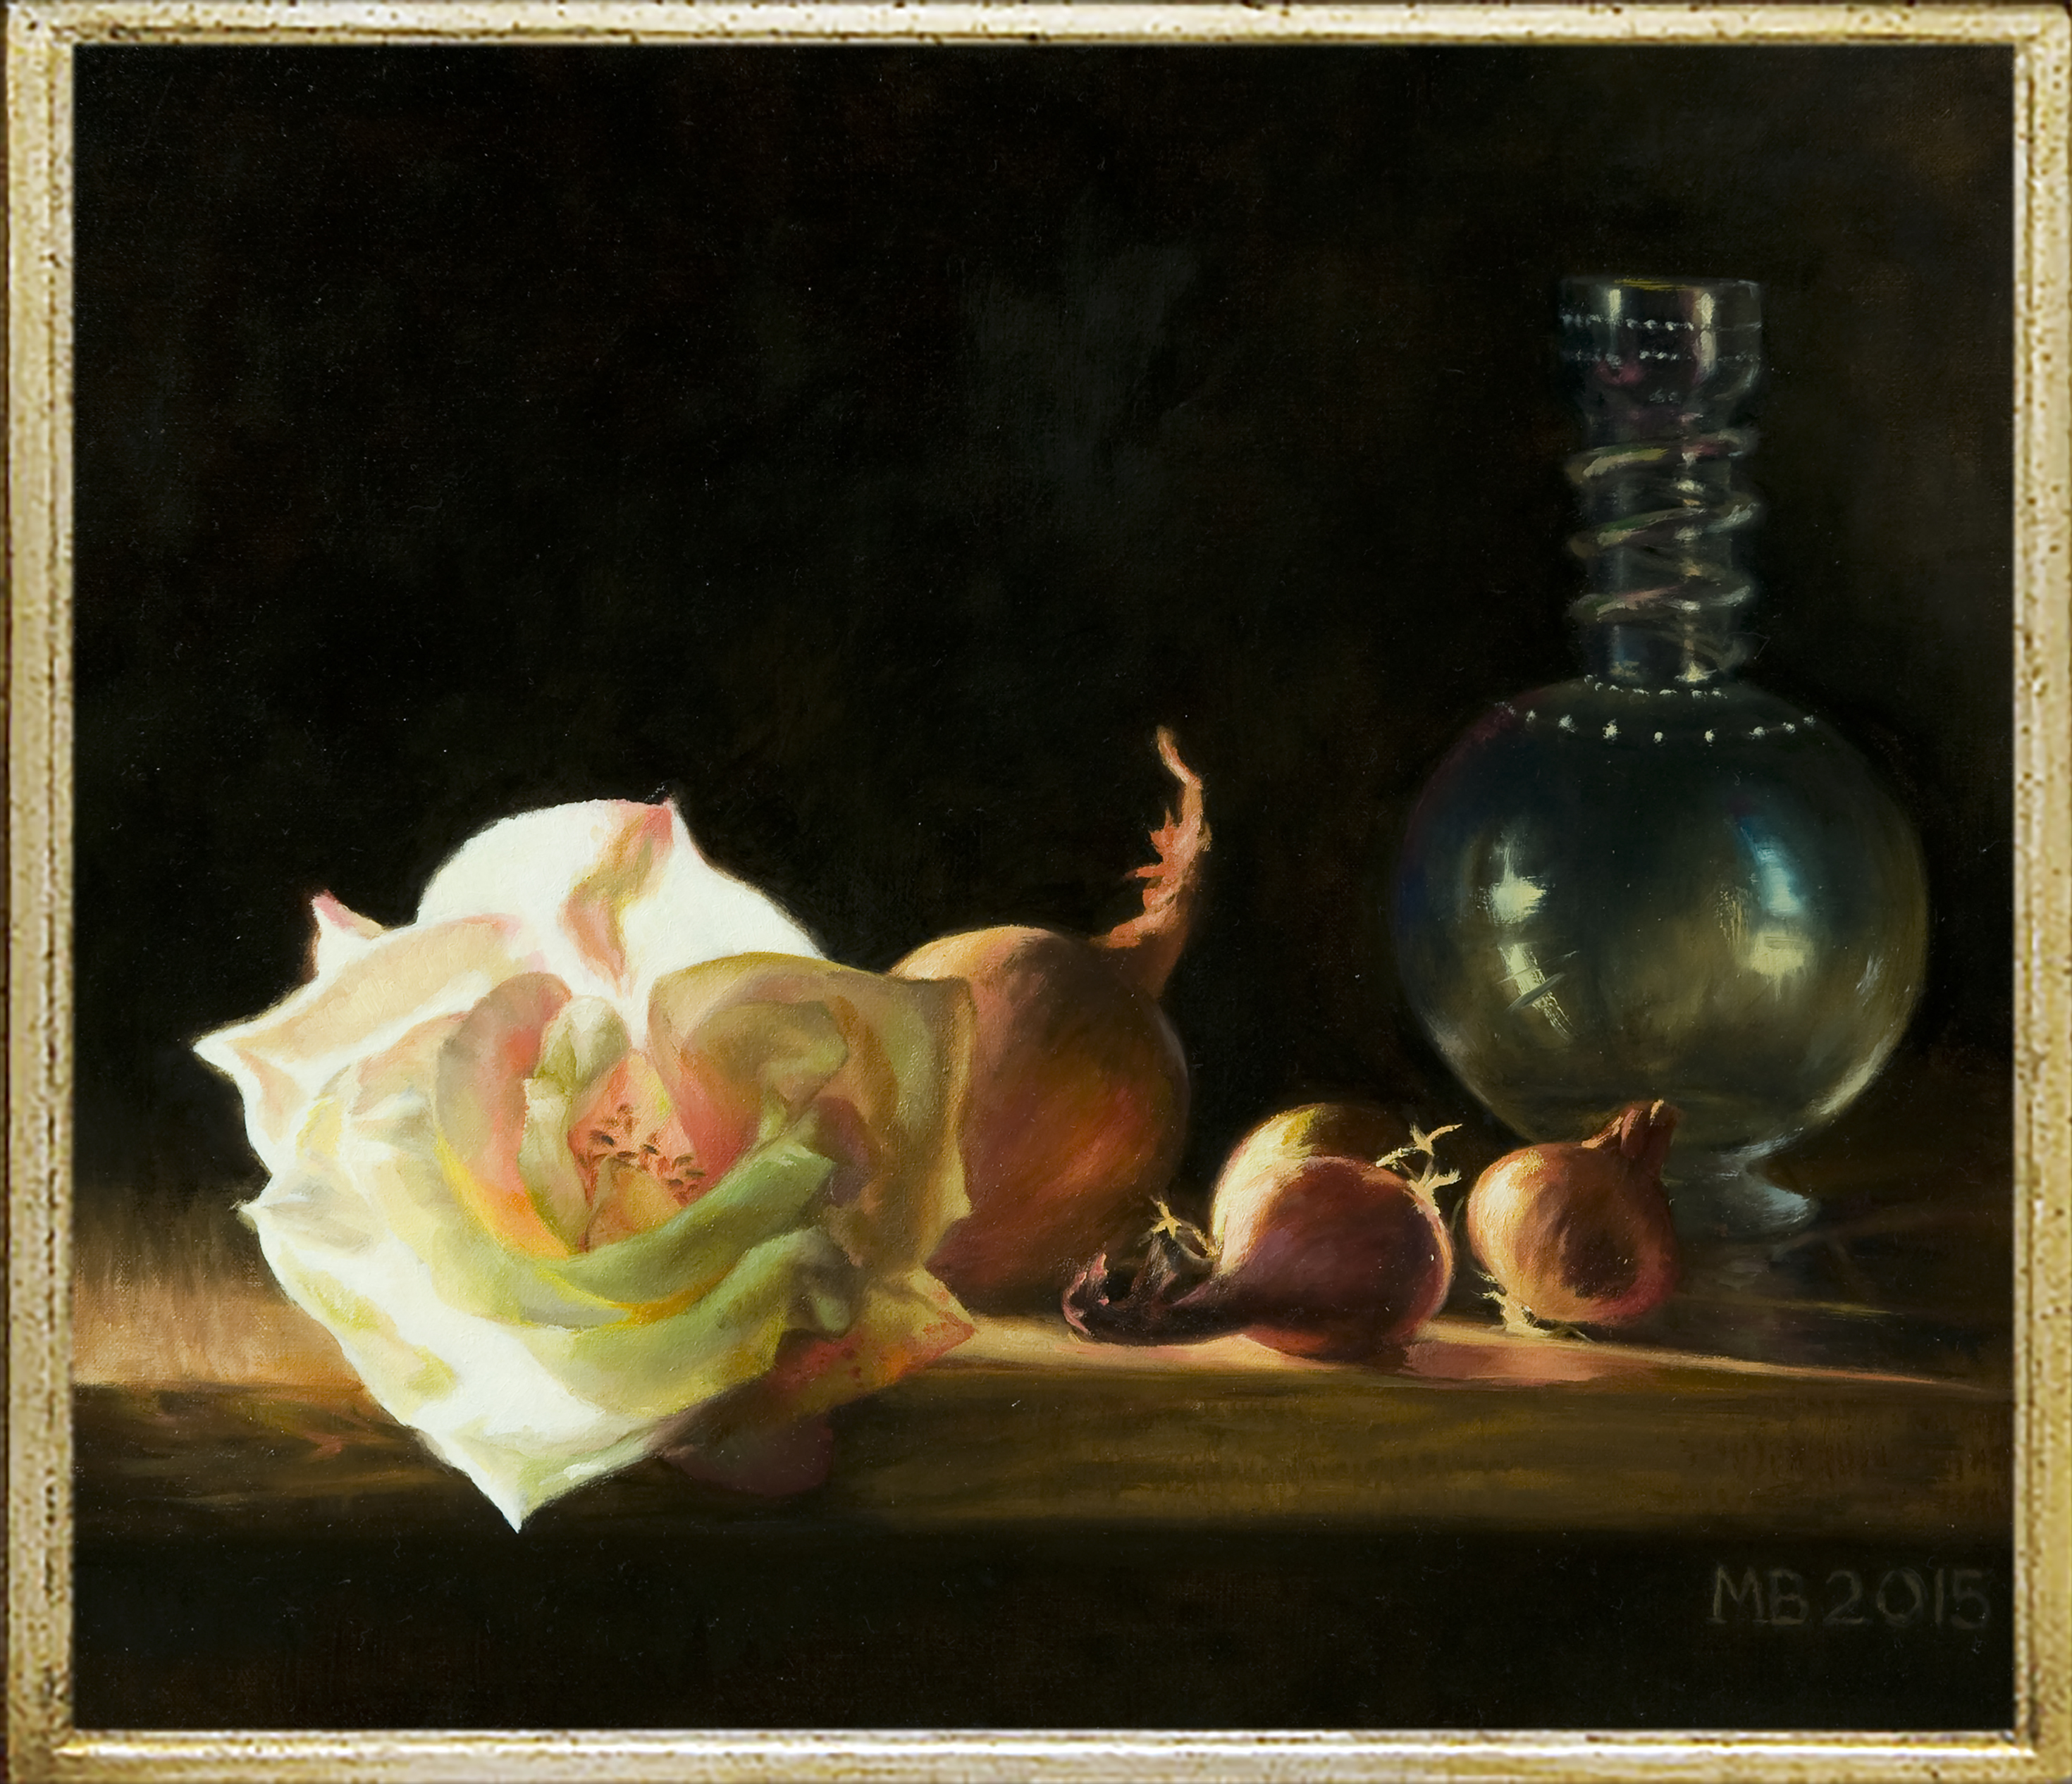 White Rose, Glass Vase and Shallots